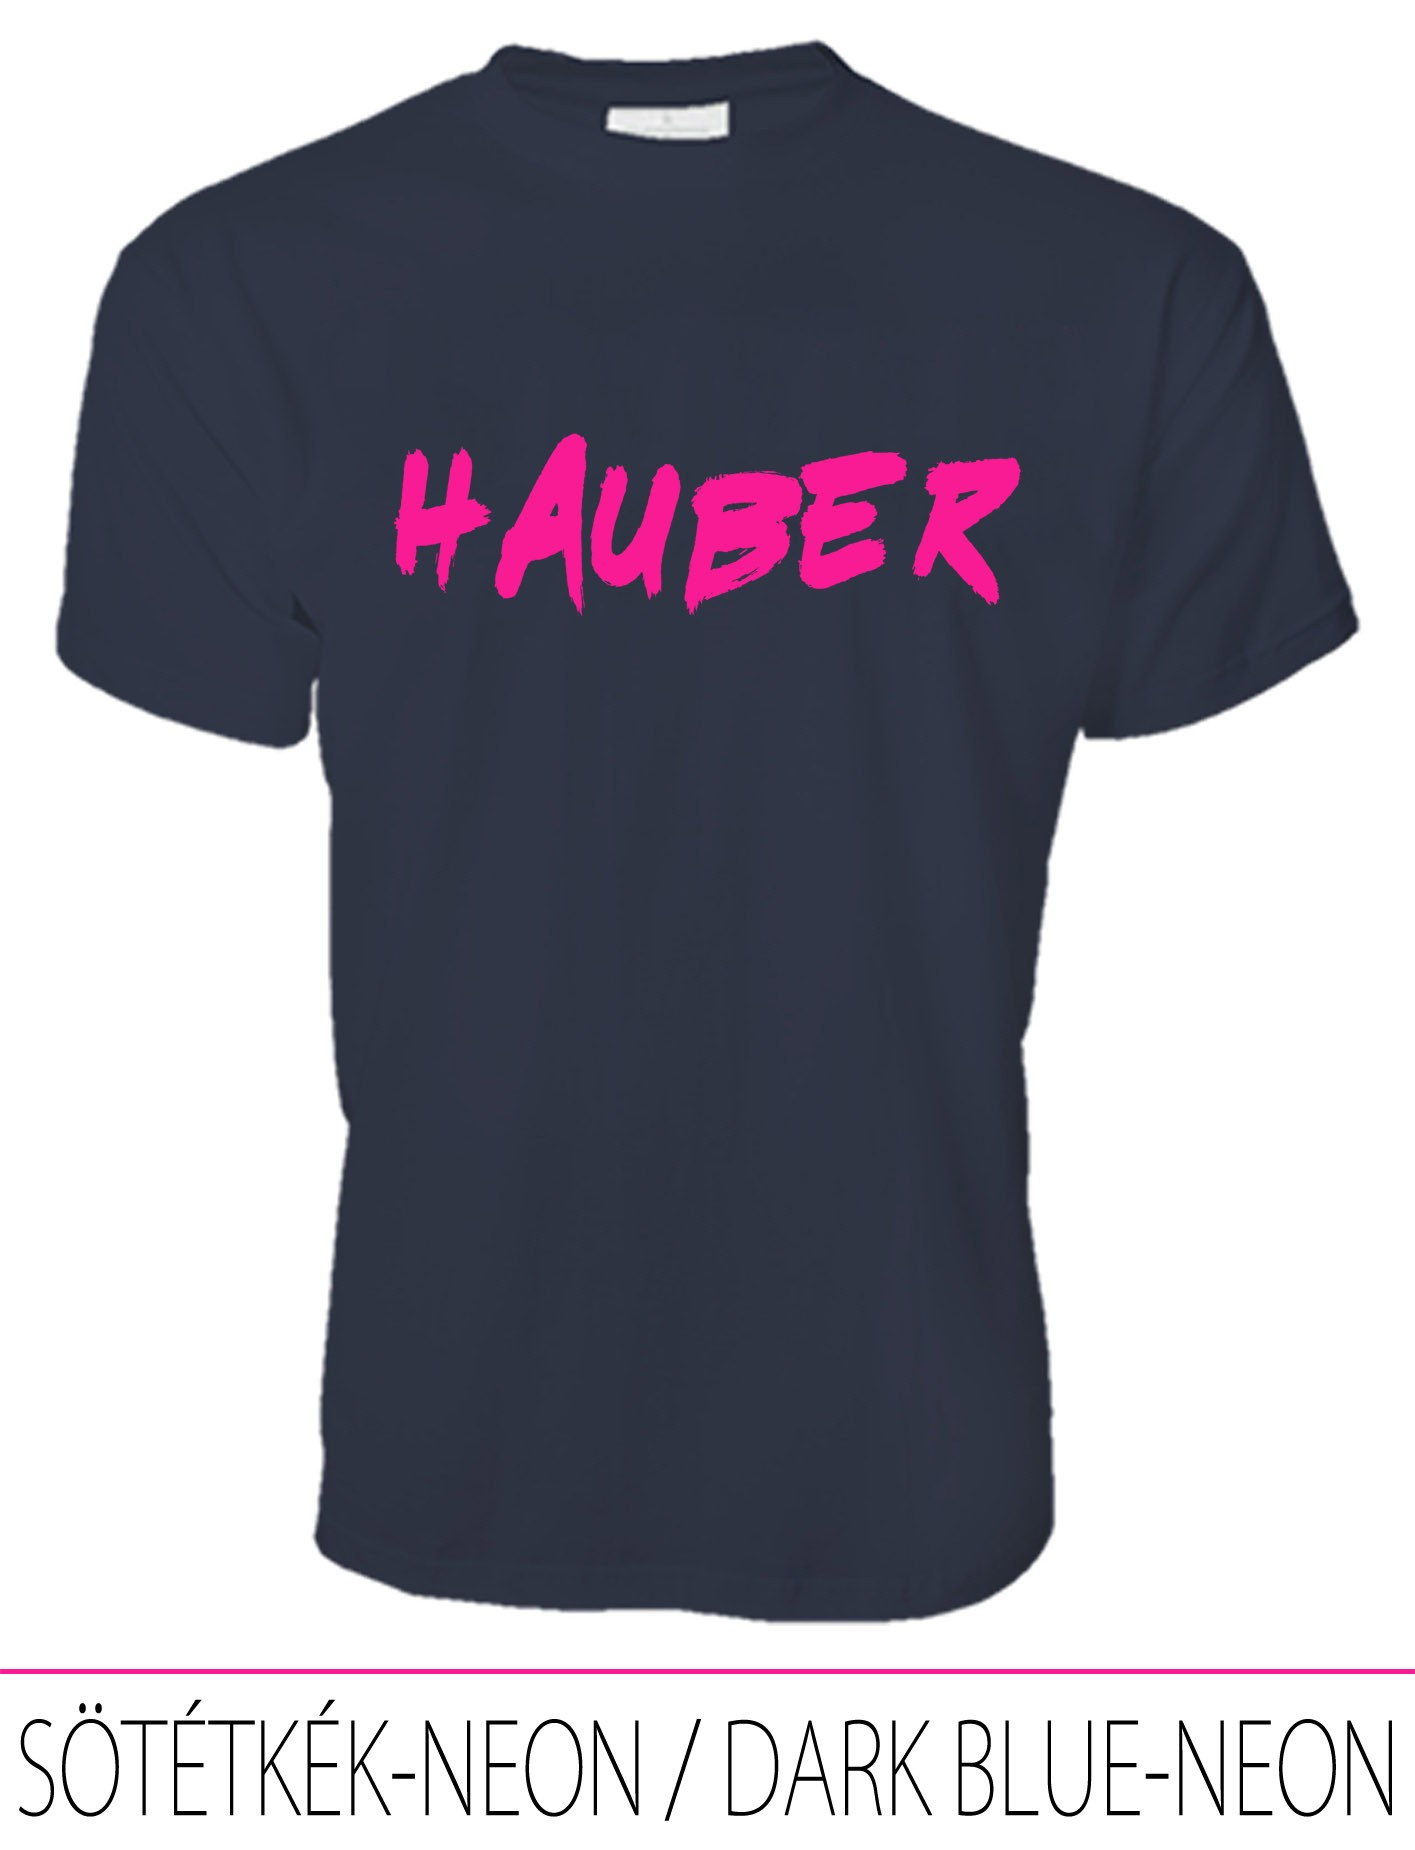 MEN PREMIUM CREW NECK T-SHIRT HAUBER DARK BLUE-NEON